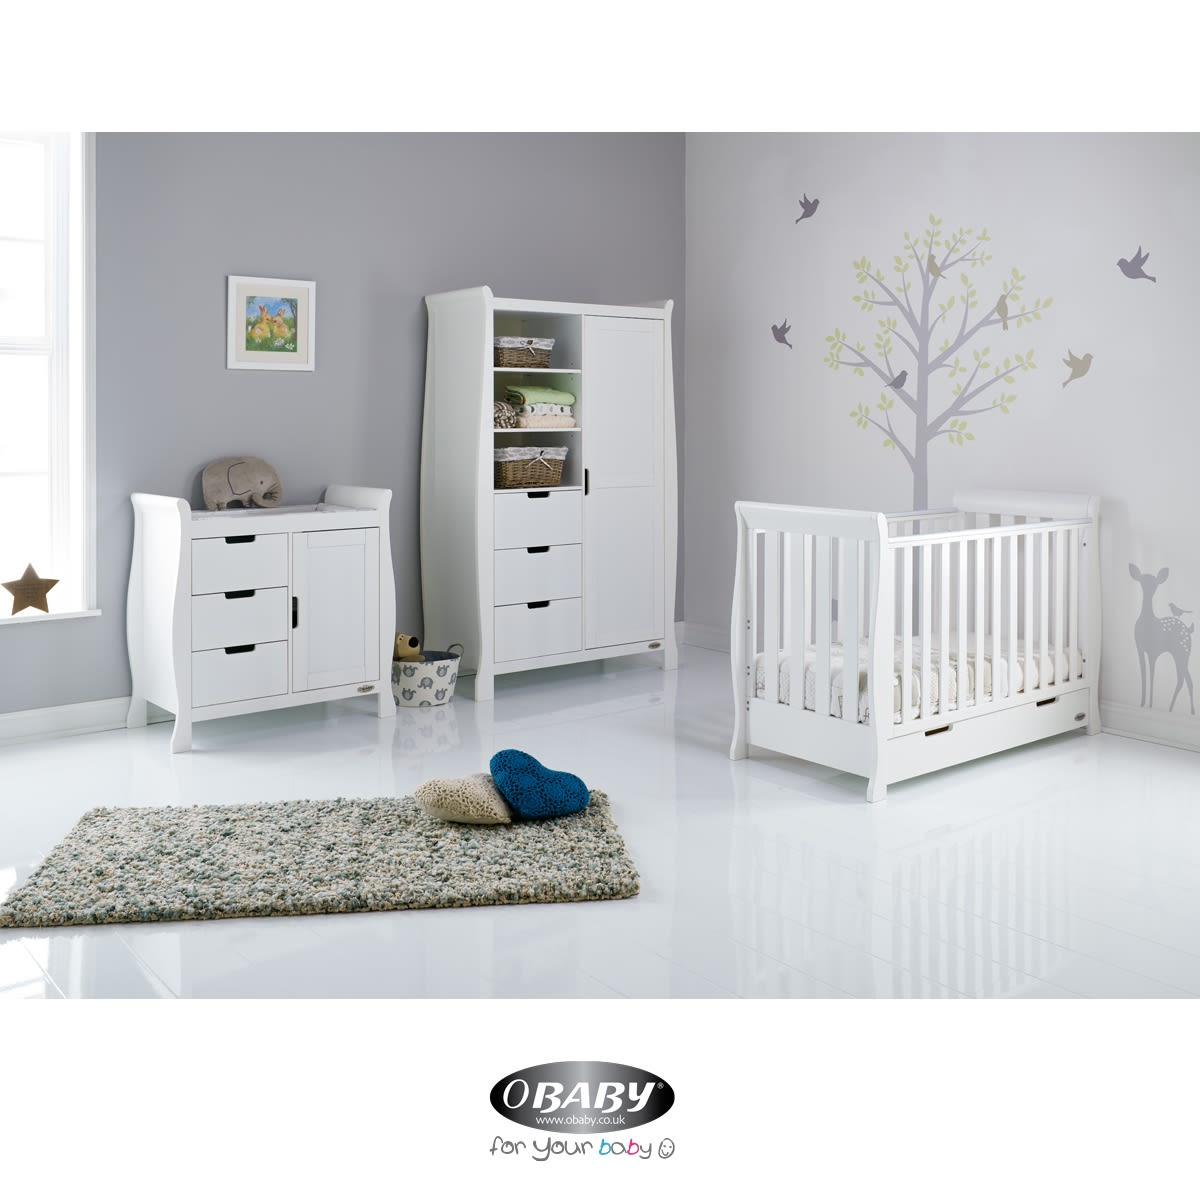 Furniture Store In Stamford Ct: Stamford Mini Cot Bed Three Piece Room Set Was £1,099.99